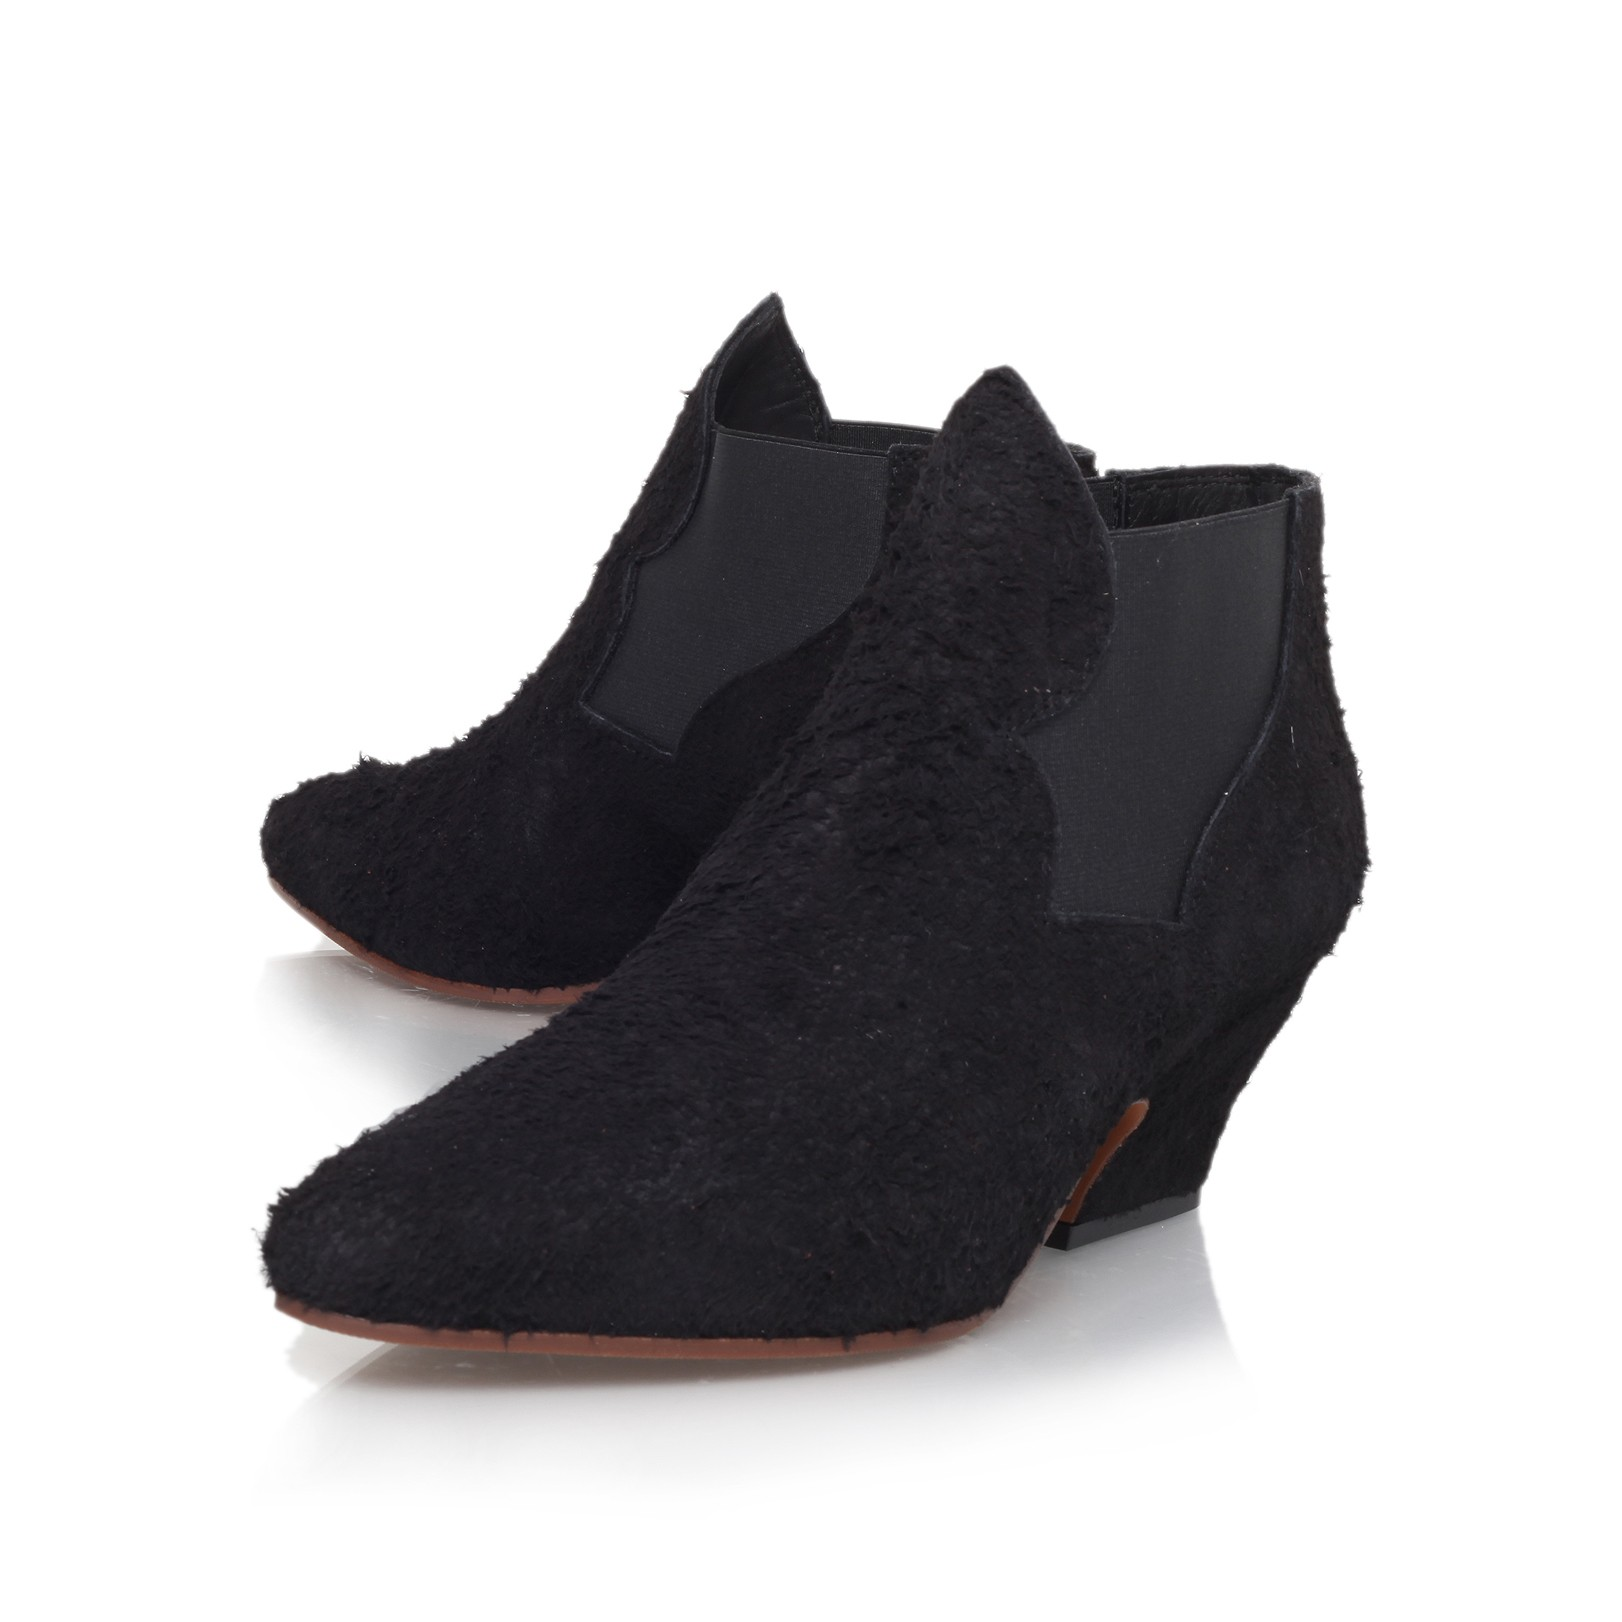 Kurt Geiger | ALMA TEXTURE Black Low Heel Chelsea Boots by Acne